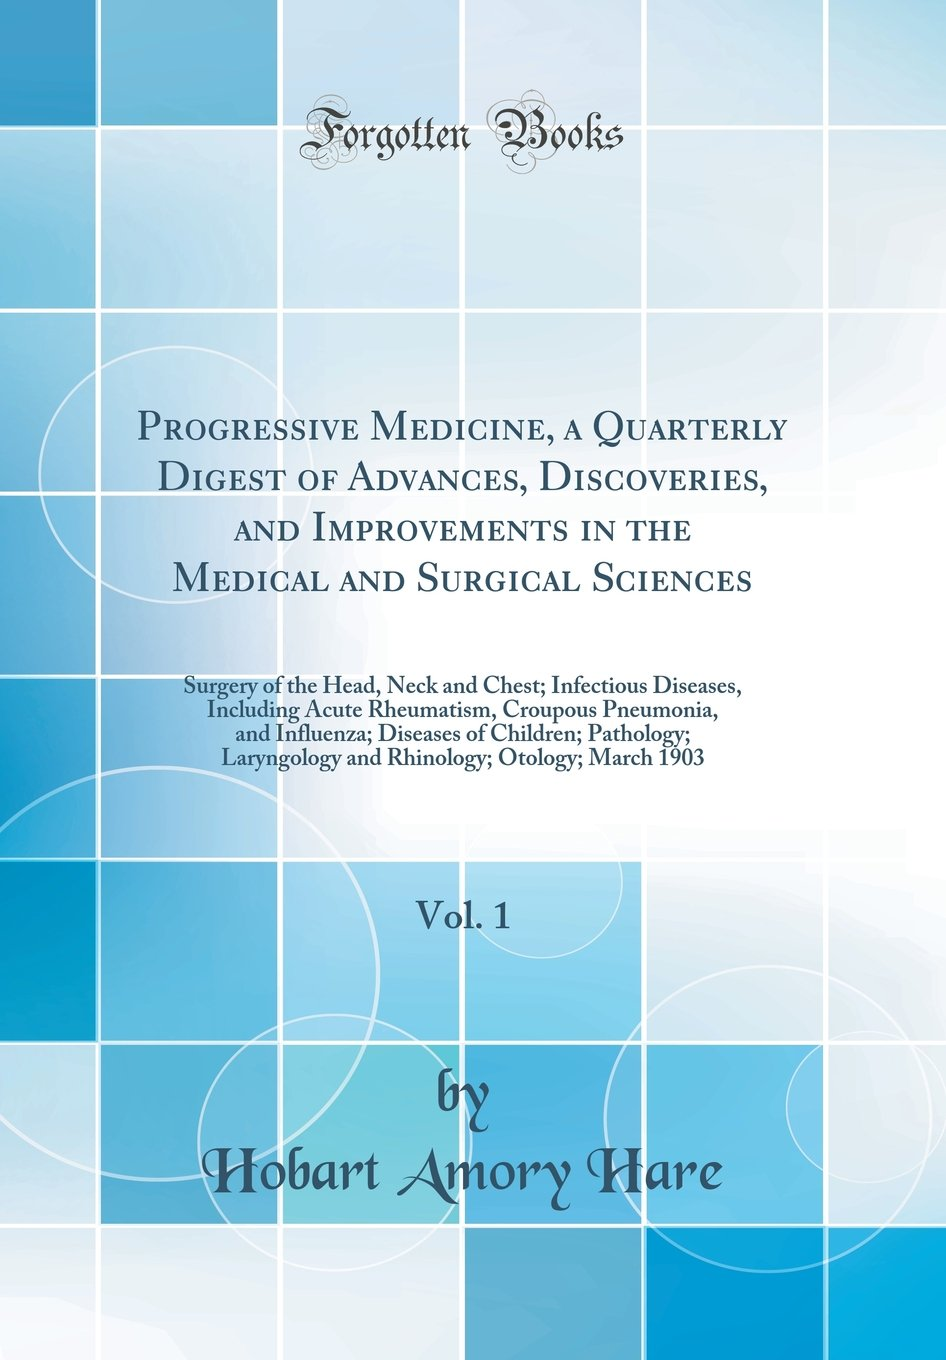 Progressive Medicine, a Quarterly Digest of Advances, Discoveries, and Improvements in the Medical and Surgical Sciences, Vol. 1: Surgery of the Head, ... Croupous Pneumonia, and Influenza; Dise pdf epub